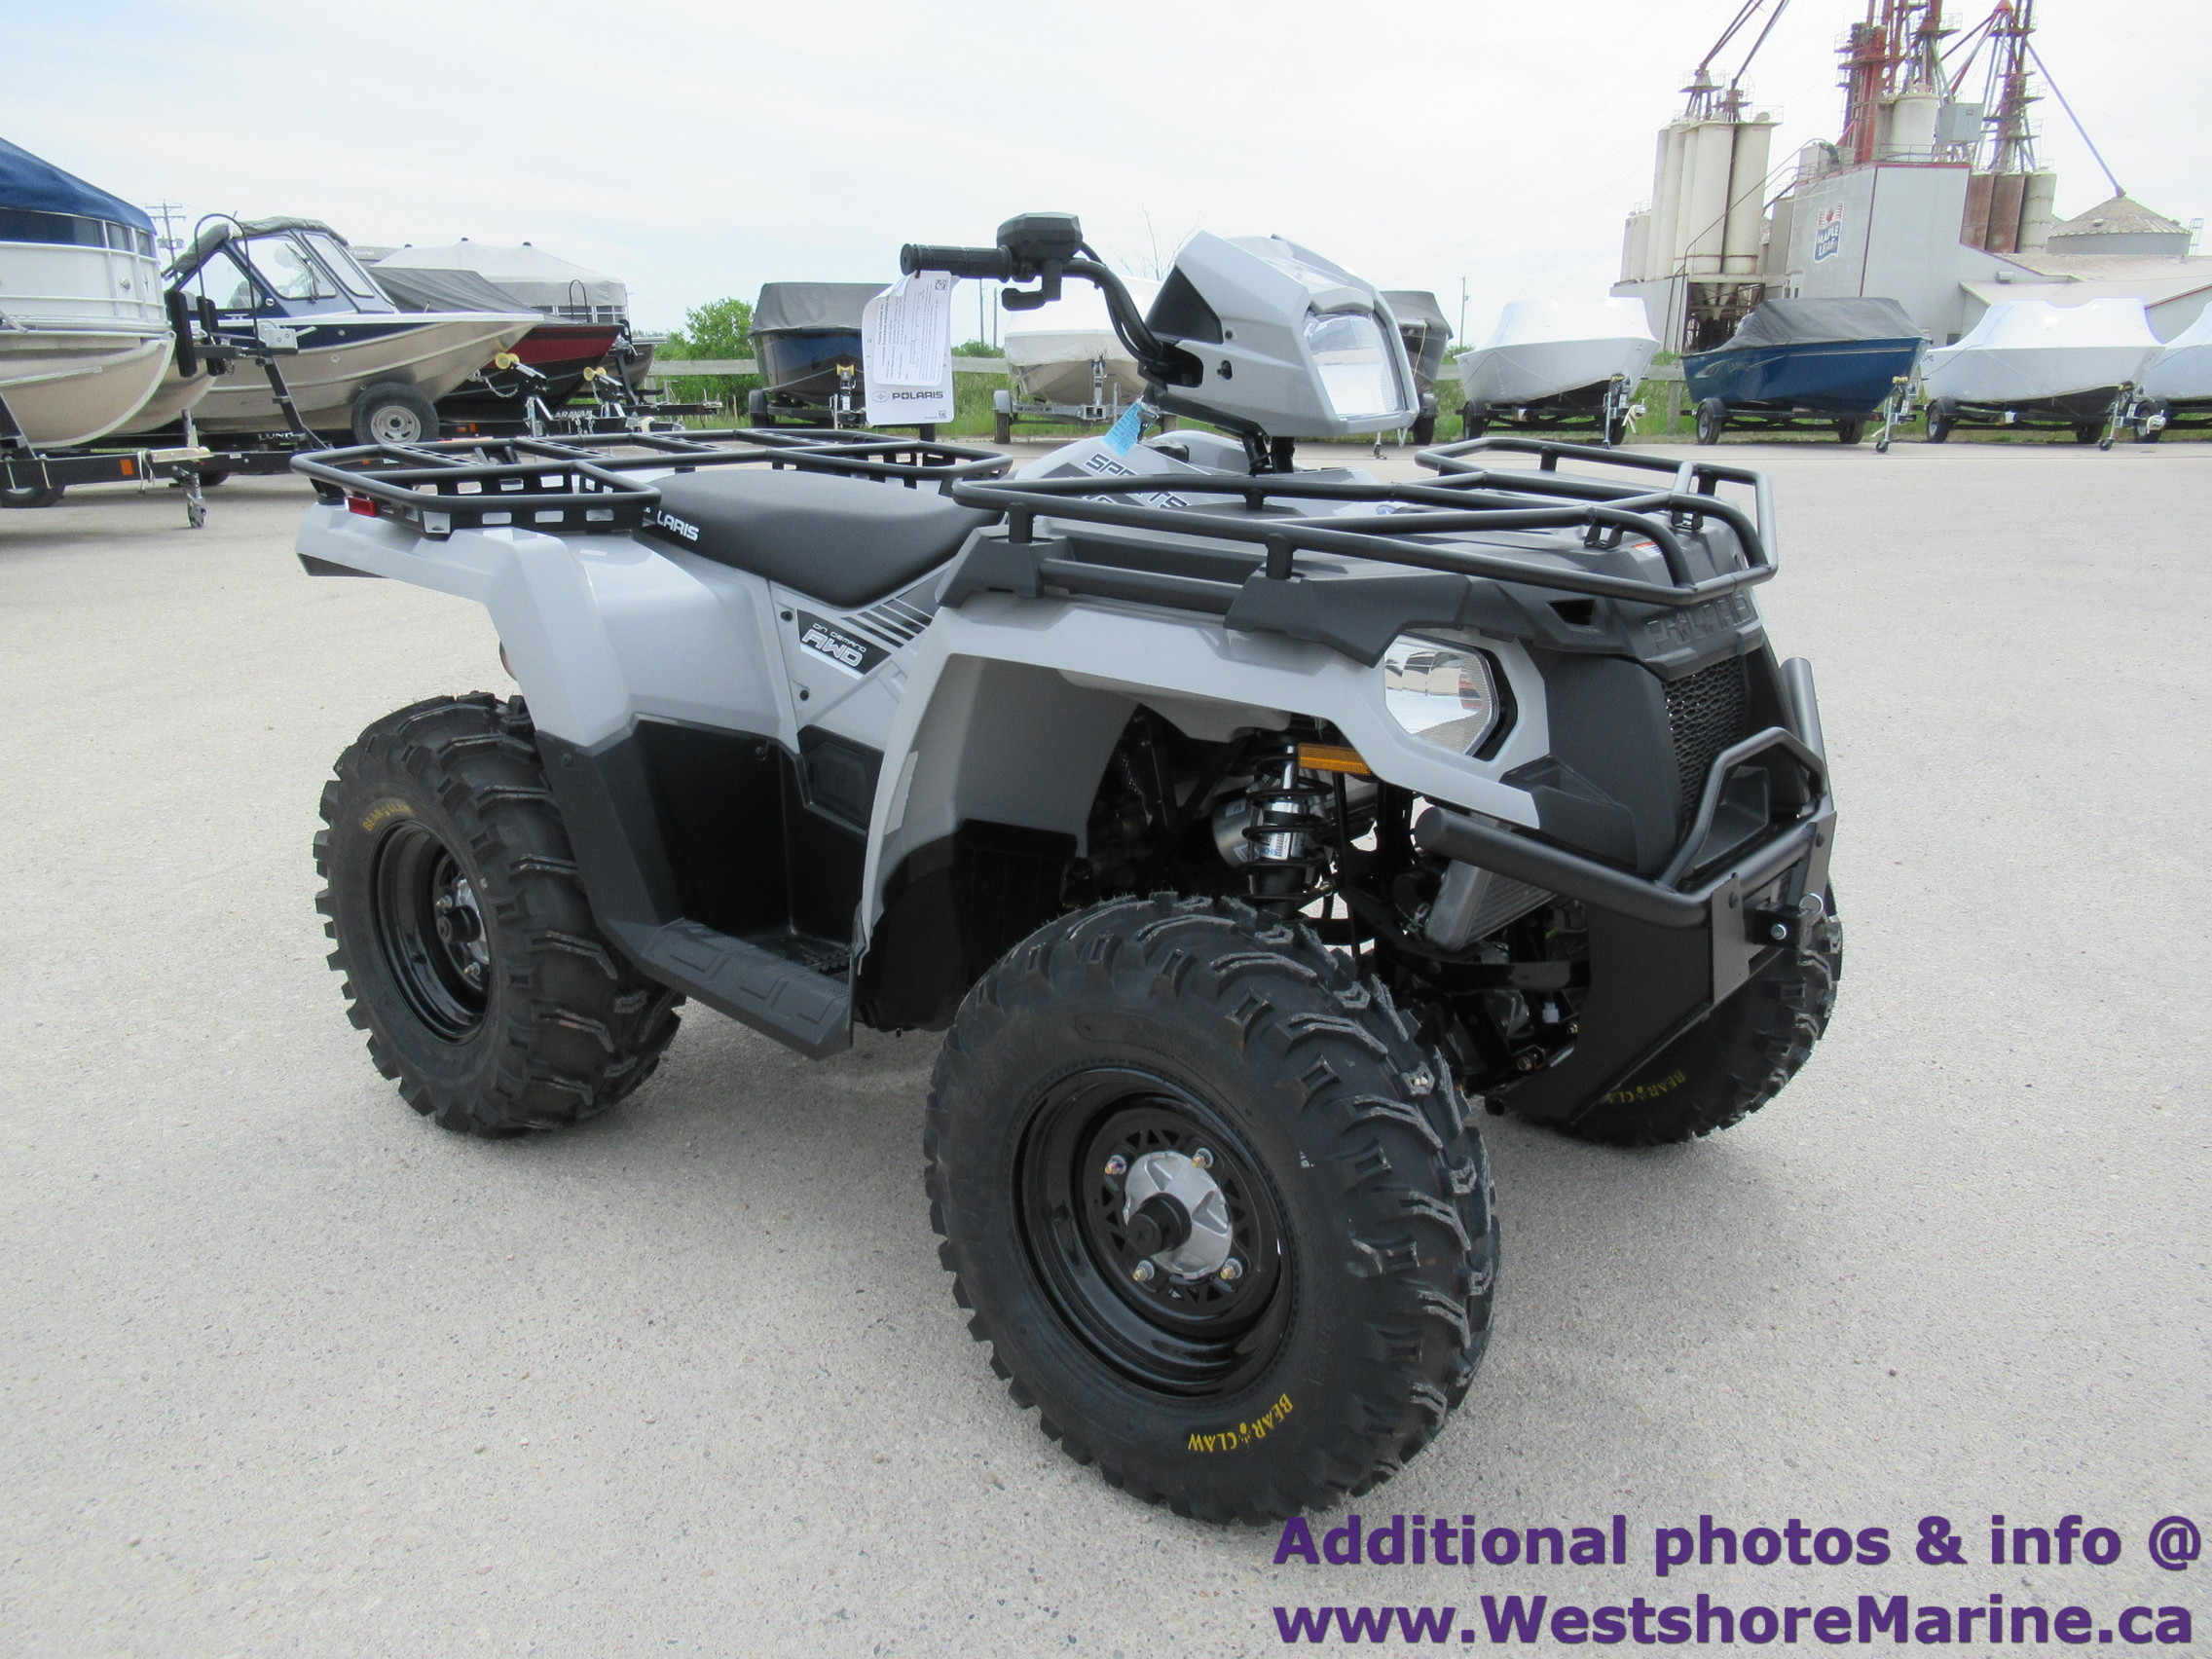 New 2019 Polaris SPORTSMAN 570 UTILITY GHOST GREY W/ EPS & 3 YEAR WARRANTY!